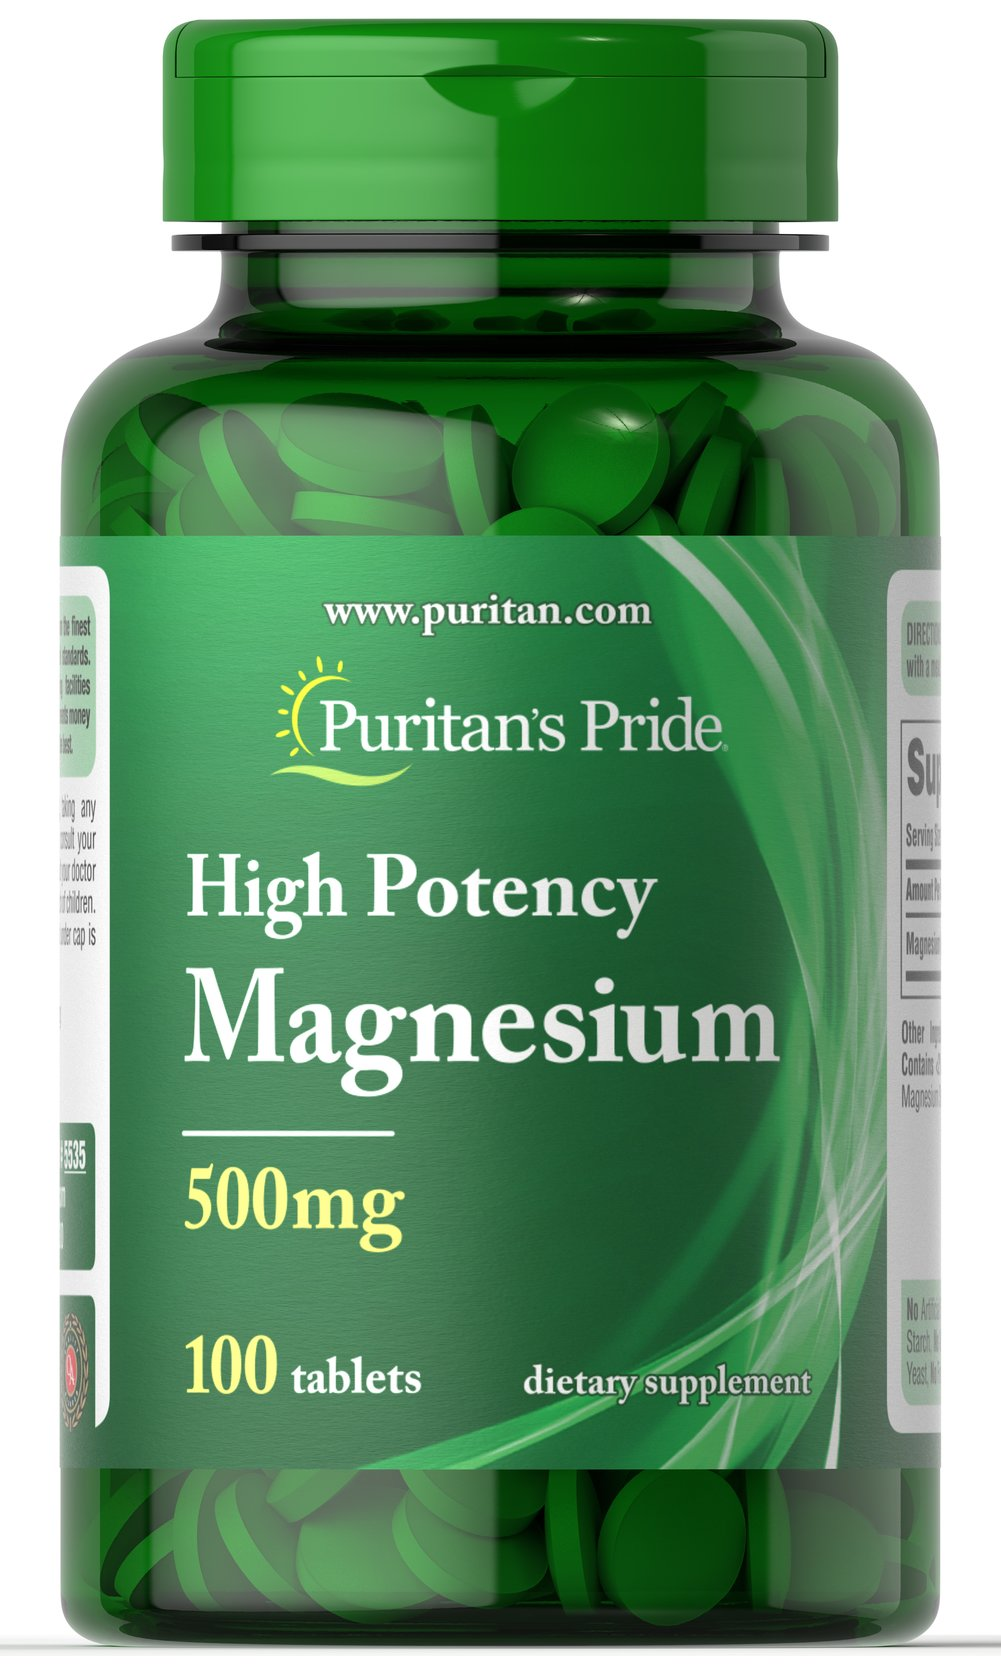 Magnesium 500 mg <p>Magnesium offers another option, besides Calcium, for supporting bone health.** Magnesium plays an essential role in maintaining bone mineralization, and is also involved in muscle contractions and nerve impulses.** Adults can take one caplet daily with a meal.</p> 100 Tablets 500 mg $11.49